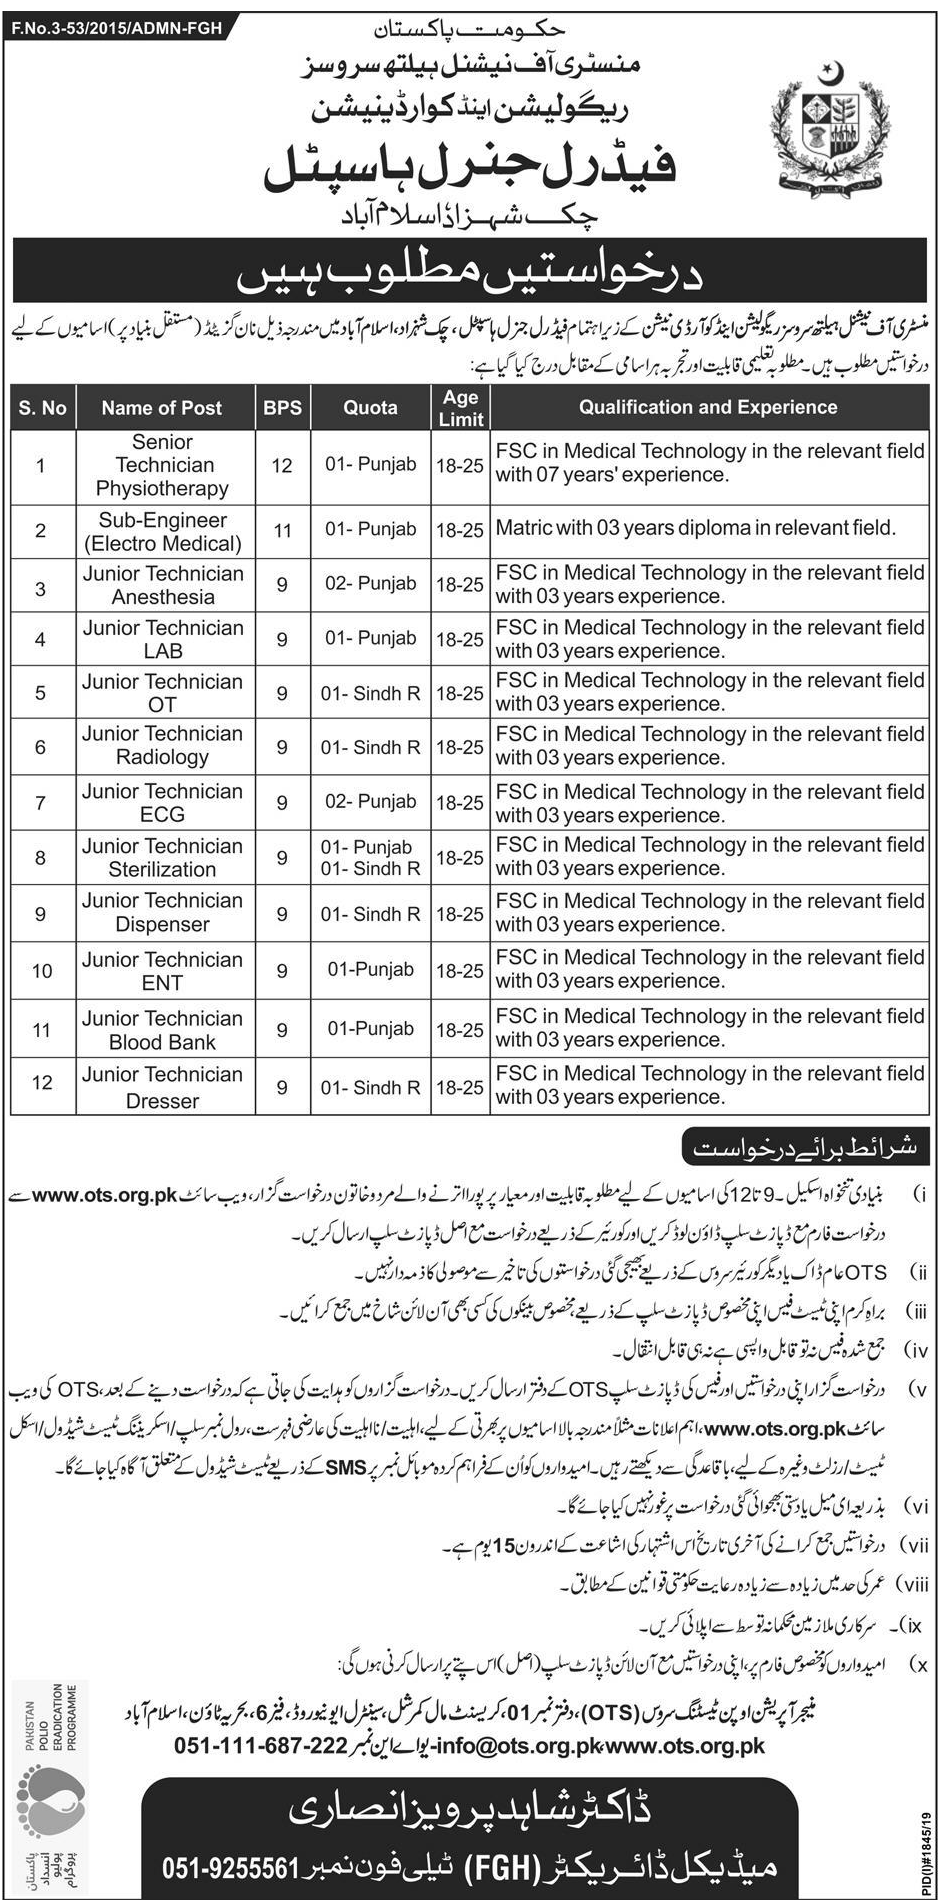 Federal General Hospital Chak Shahzad Islamabad Jobs OTS Test Result